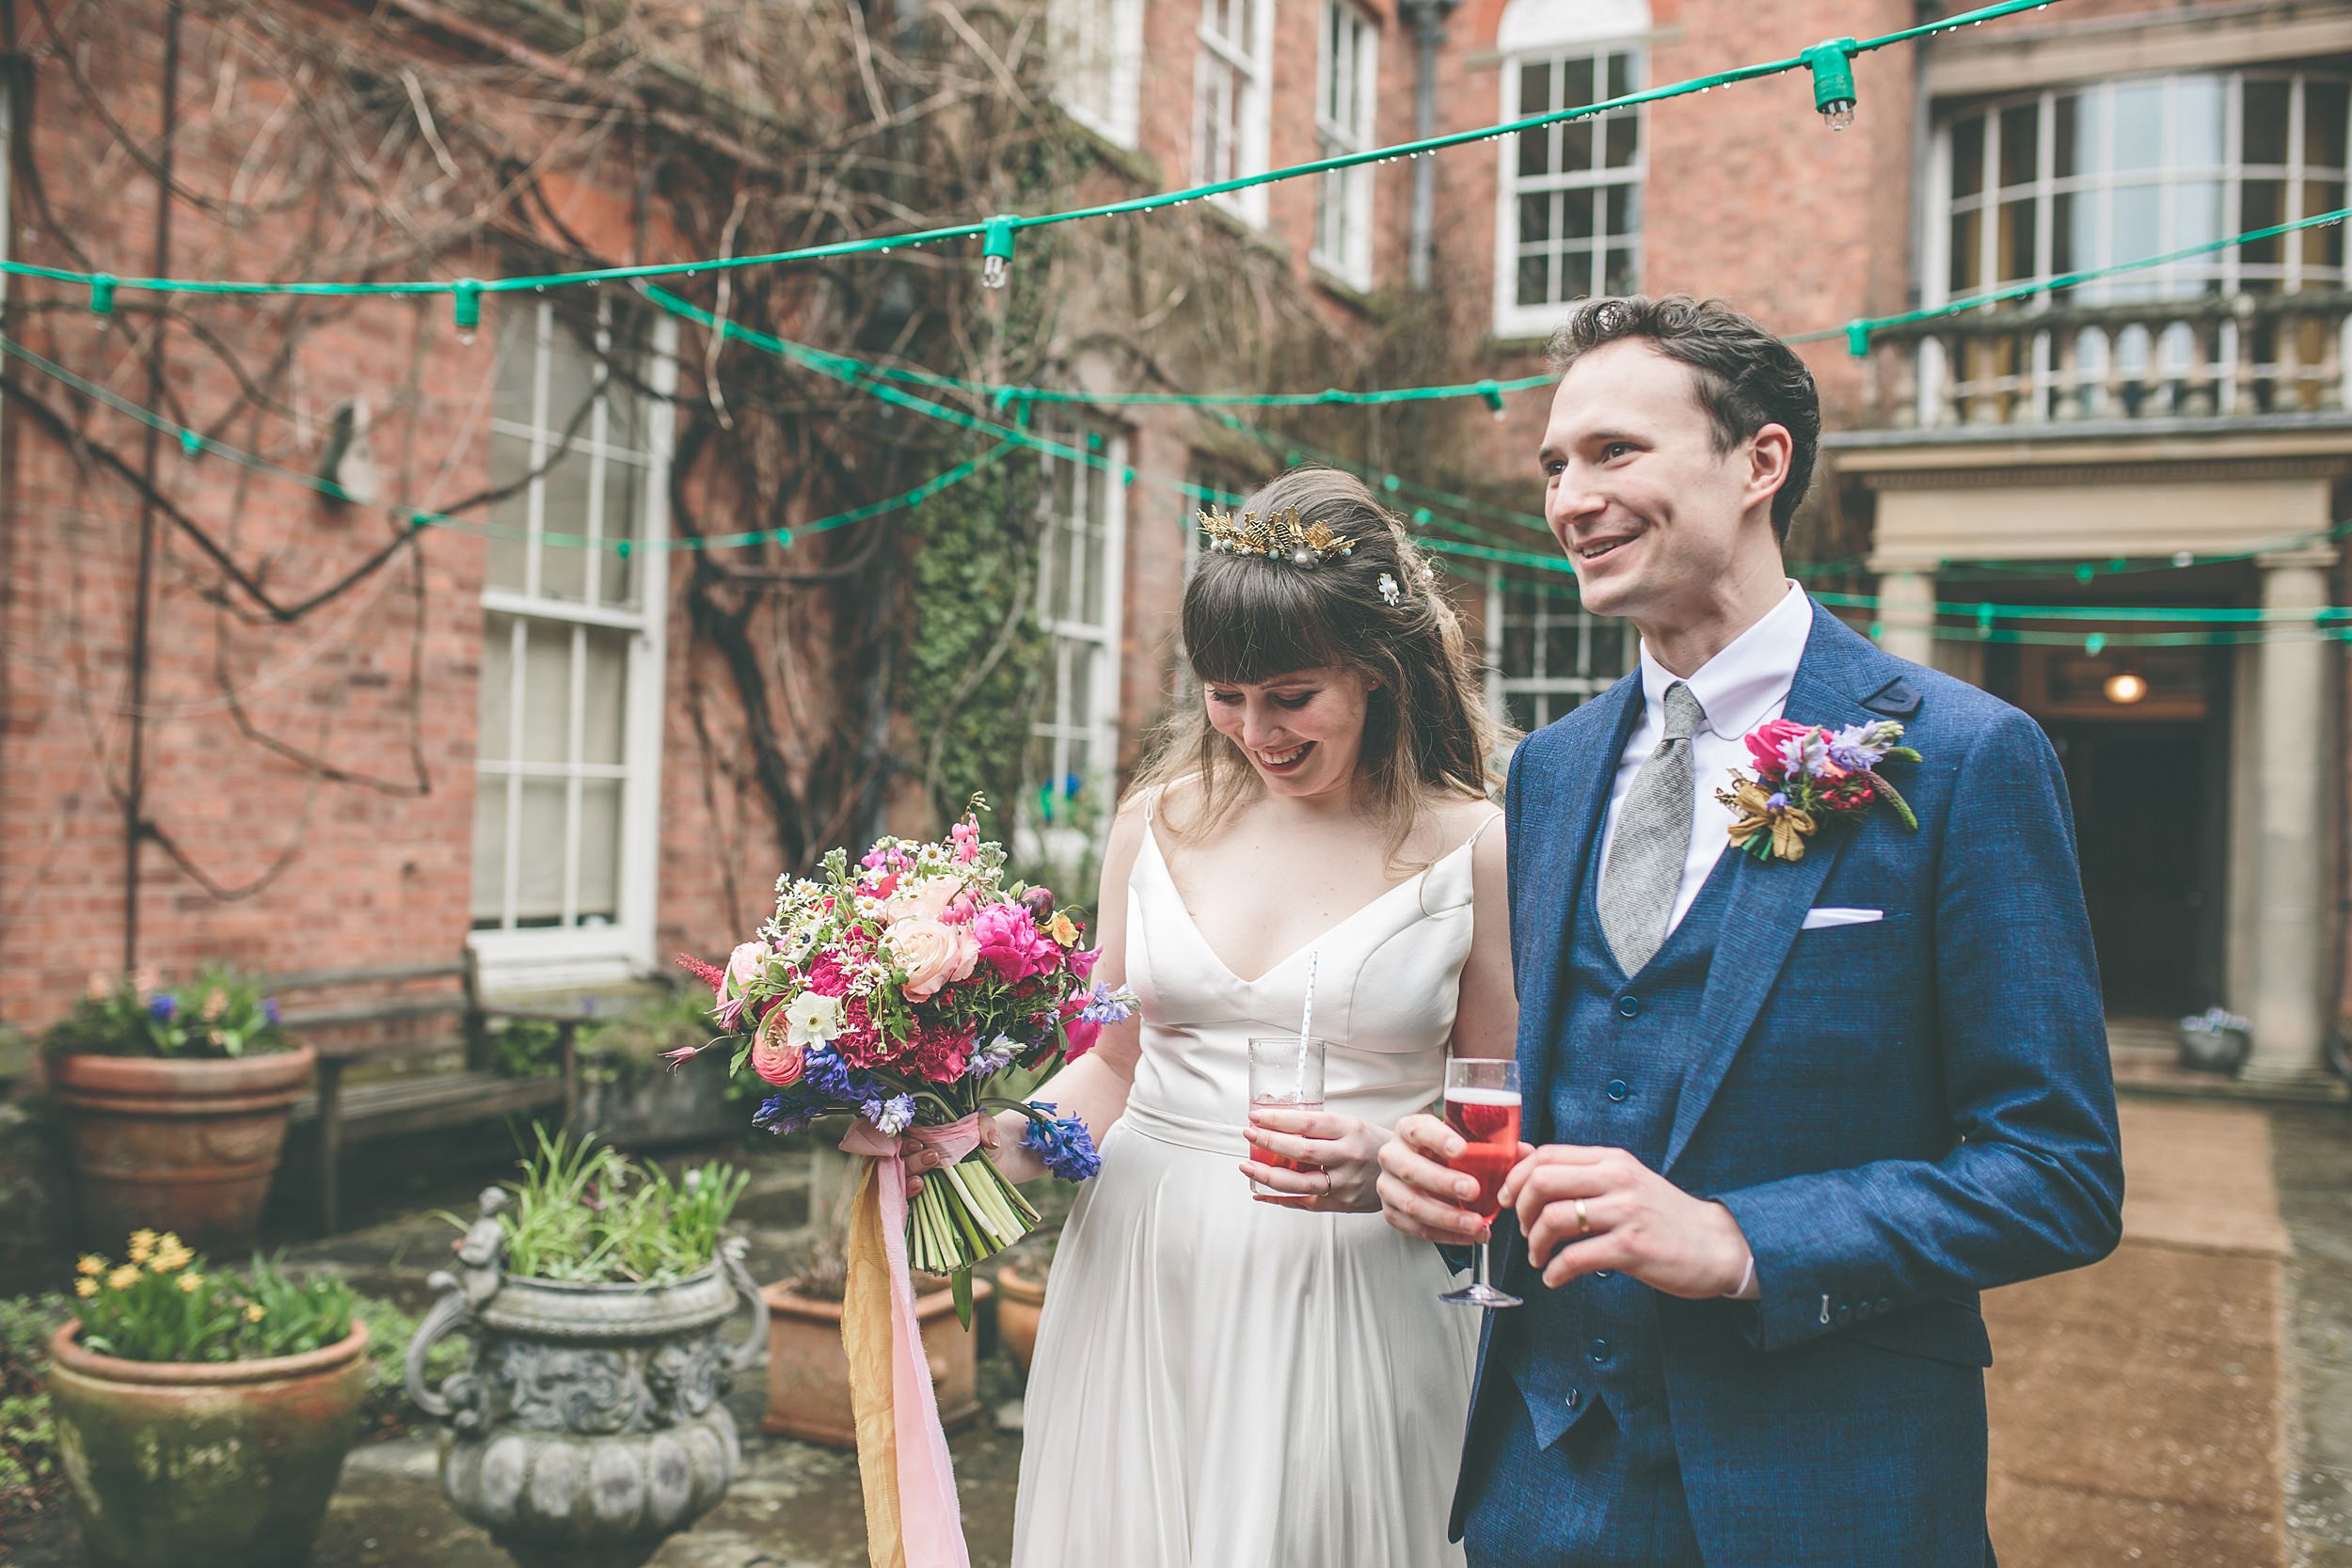 Wes Anderson Wedding Photography Cornwall Photographer Walcot Hall 00069.jpg